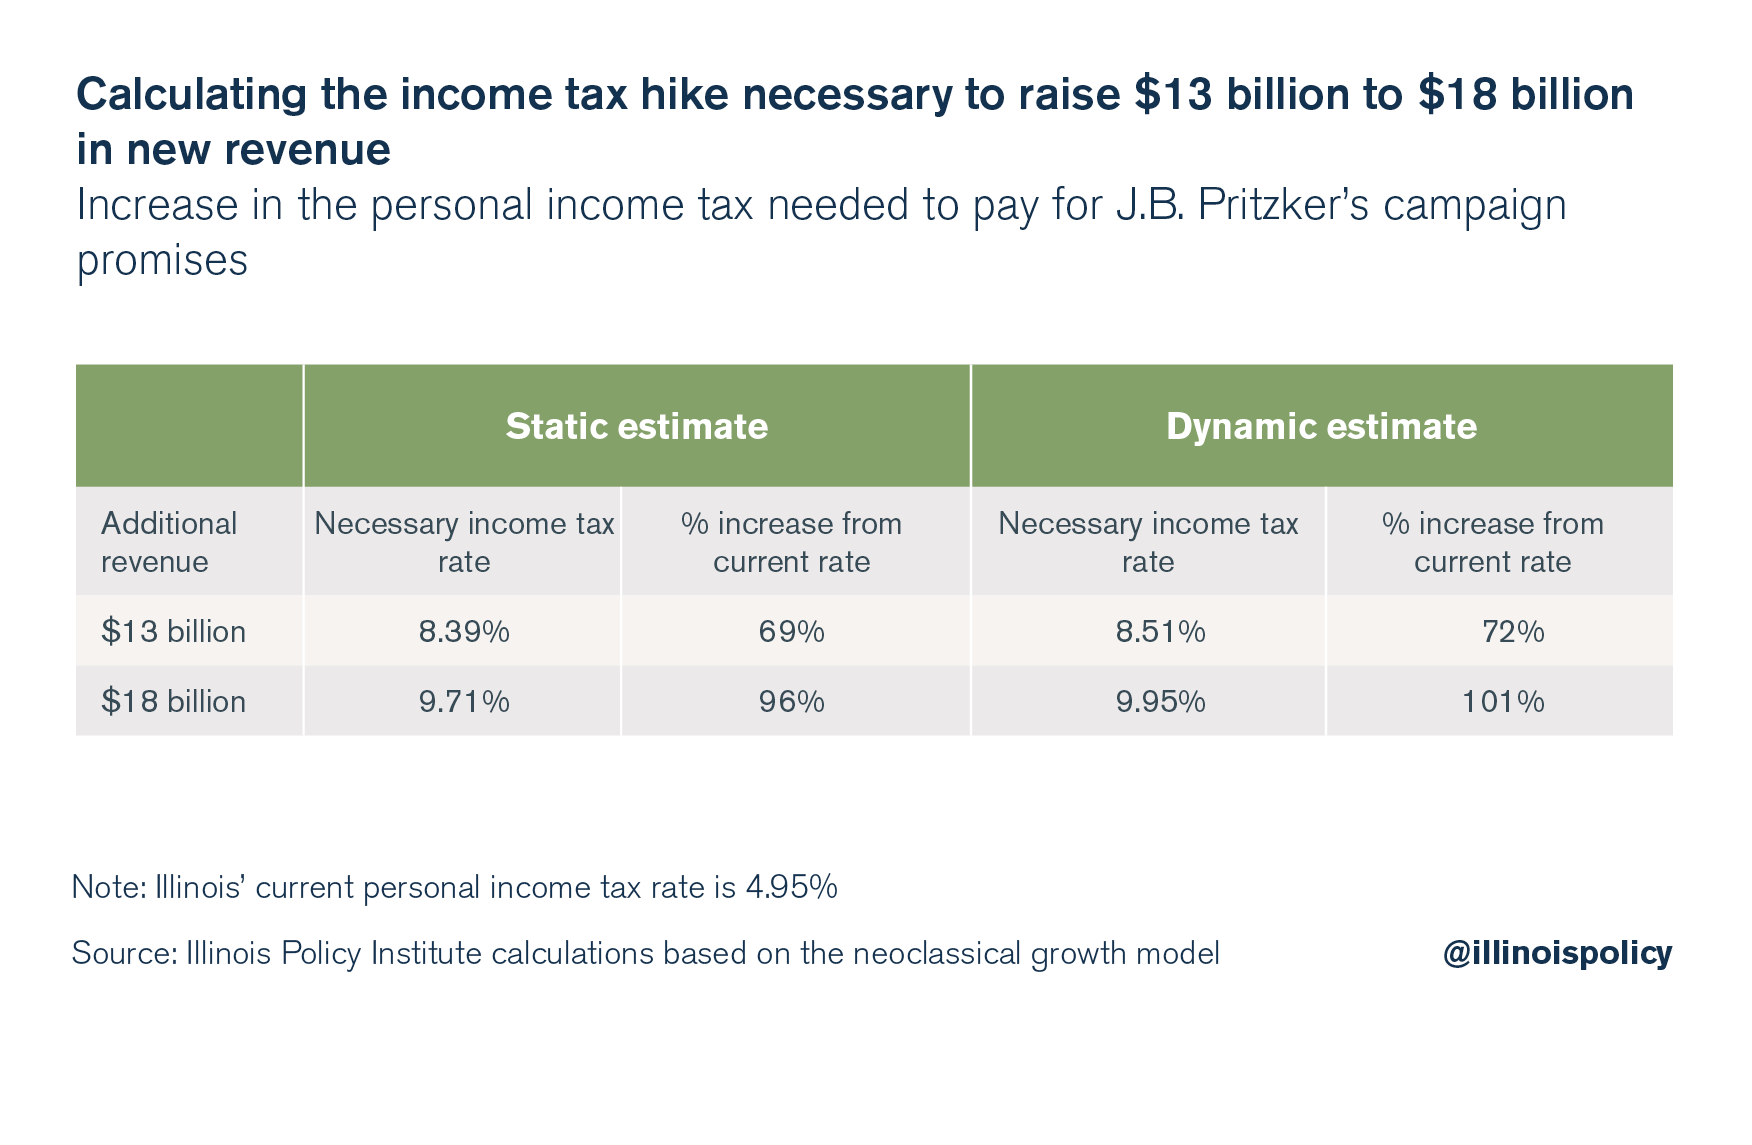 Calculating the income tax hike necessary to raise $13 billion to $18 billion in new revenue